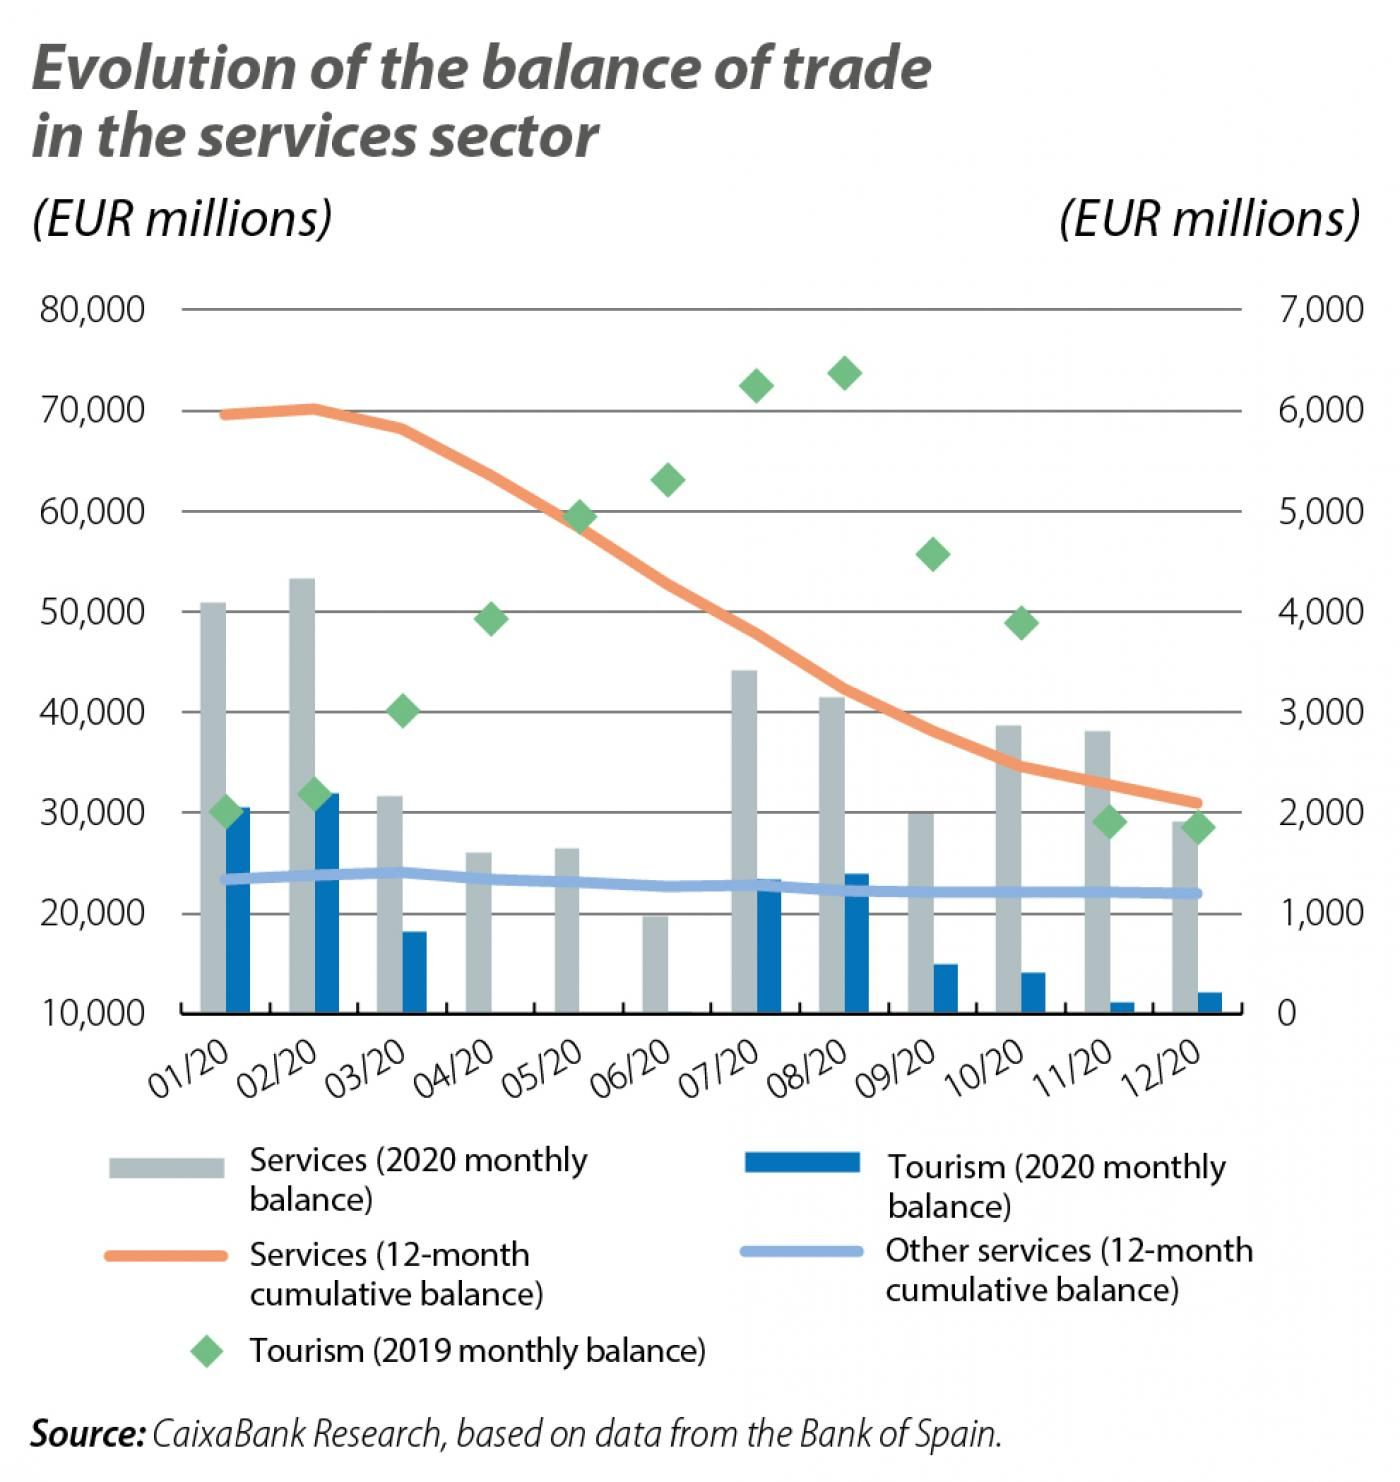 Evolution of the balance of trade in the services sector